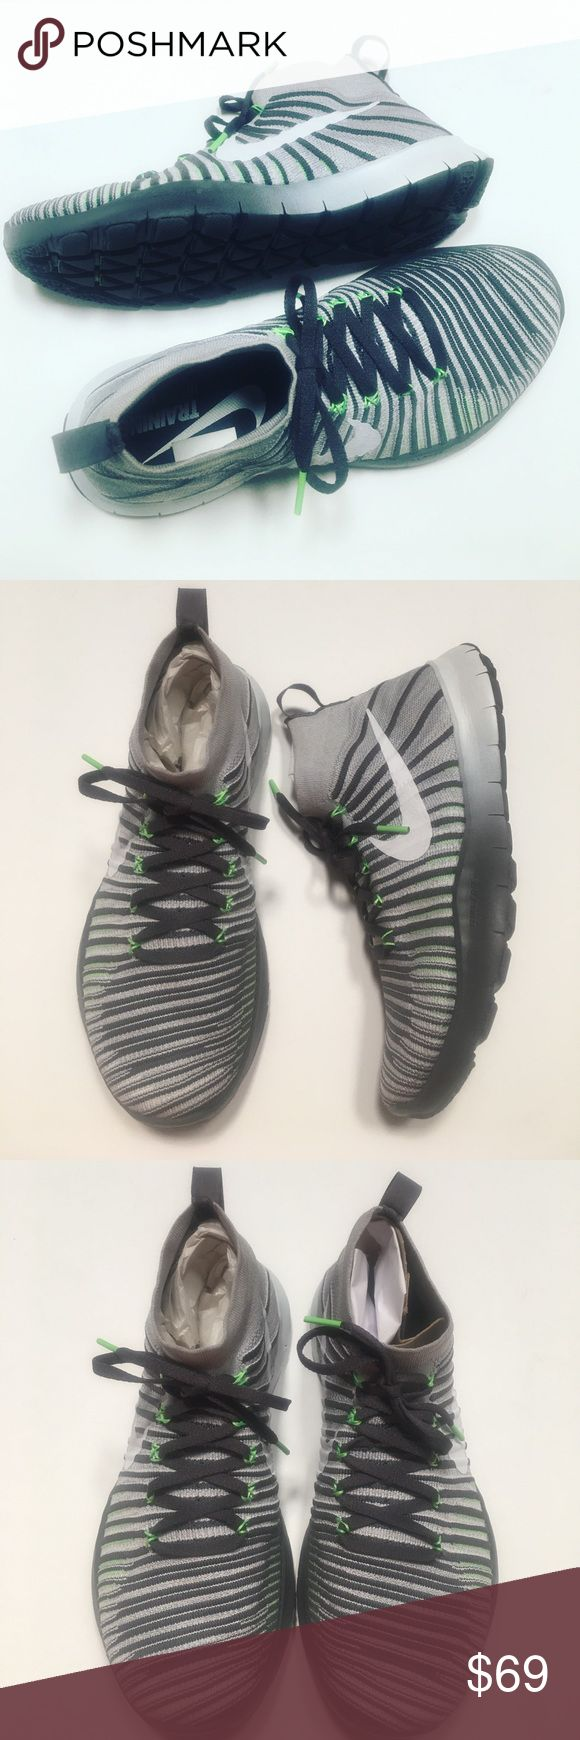 Nike Free Train Force Flyknit Designed for training. I purchased these to workout. I wear a size 11 in women's shoes but I am actually a 10 and a half. I can wear a size 9 in men's shoes but prefer a size 10. I go a size up because of the socks I wear and I just want lots of toe space when working out. These shoes are a size 10 but fit like a 9. Like new no visible flaws. So if you are a woman and wear a size 9 in men's sneakers these will be fine. If you are a man I recommend these only if…